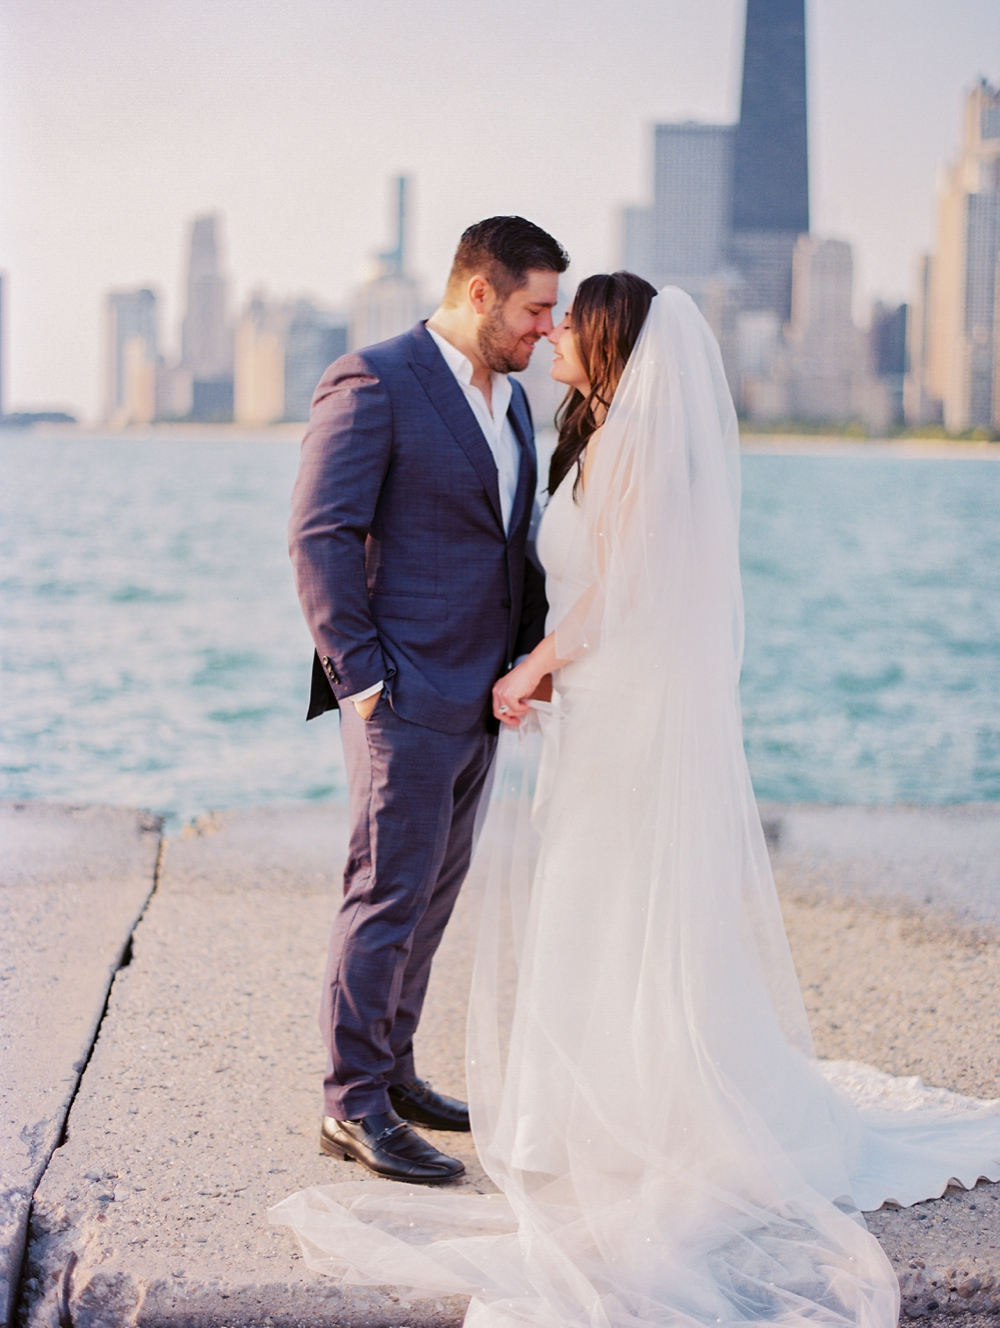 Kristin-La-Voie-Photography-CHICAGO-WEDDING-PHOTOGRAPHER-54